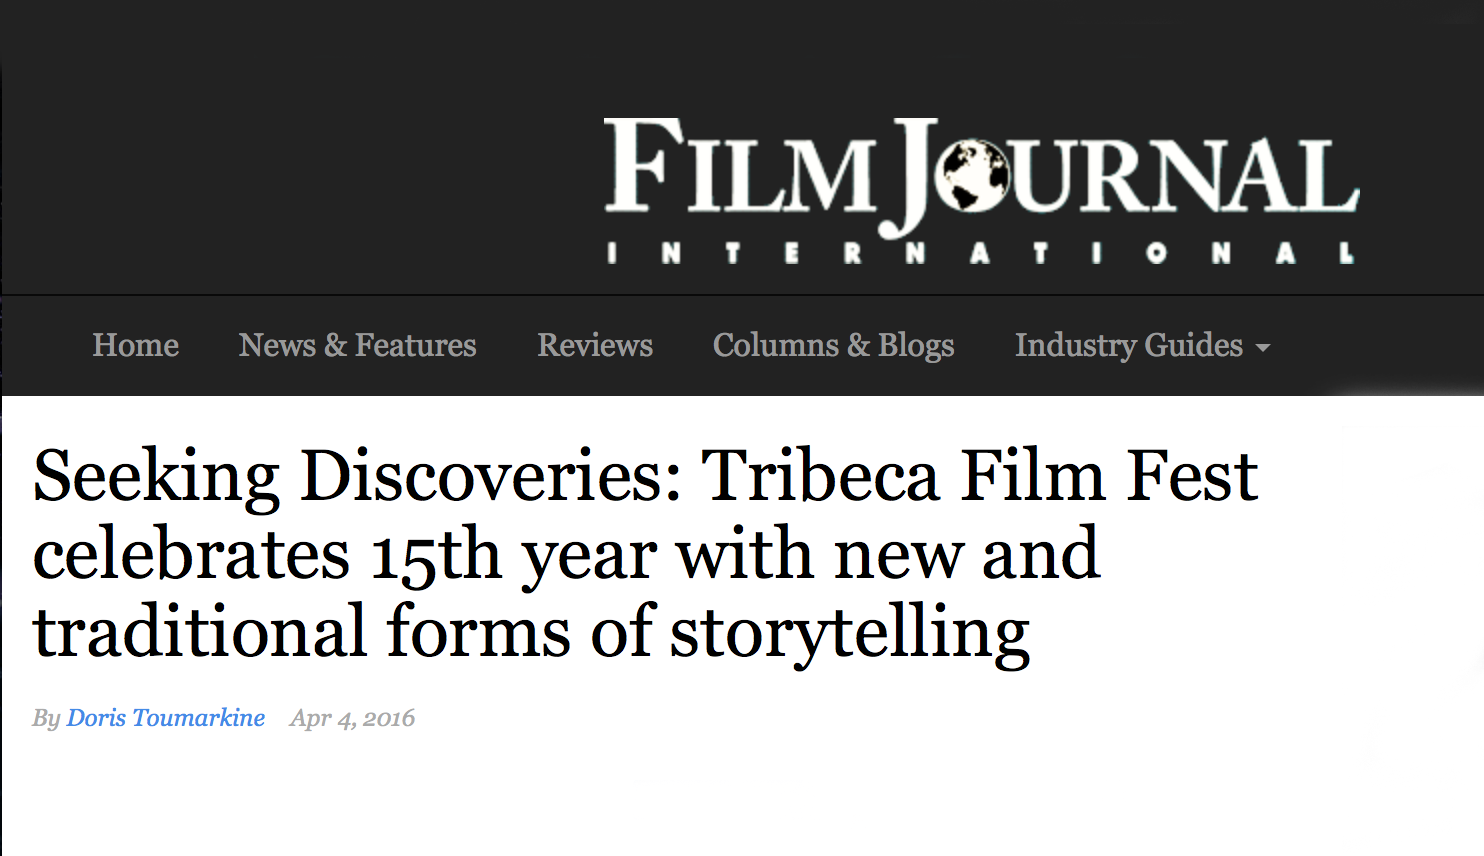 Seeking Discoveries: Tribeca Film Fest celebrates 15th year with new and traditional forms of storytelling